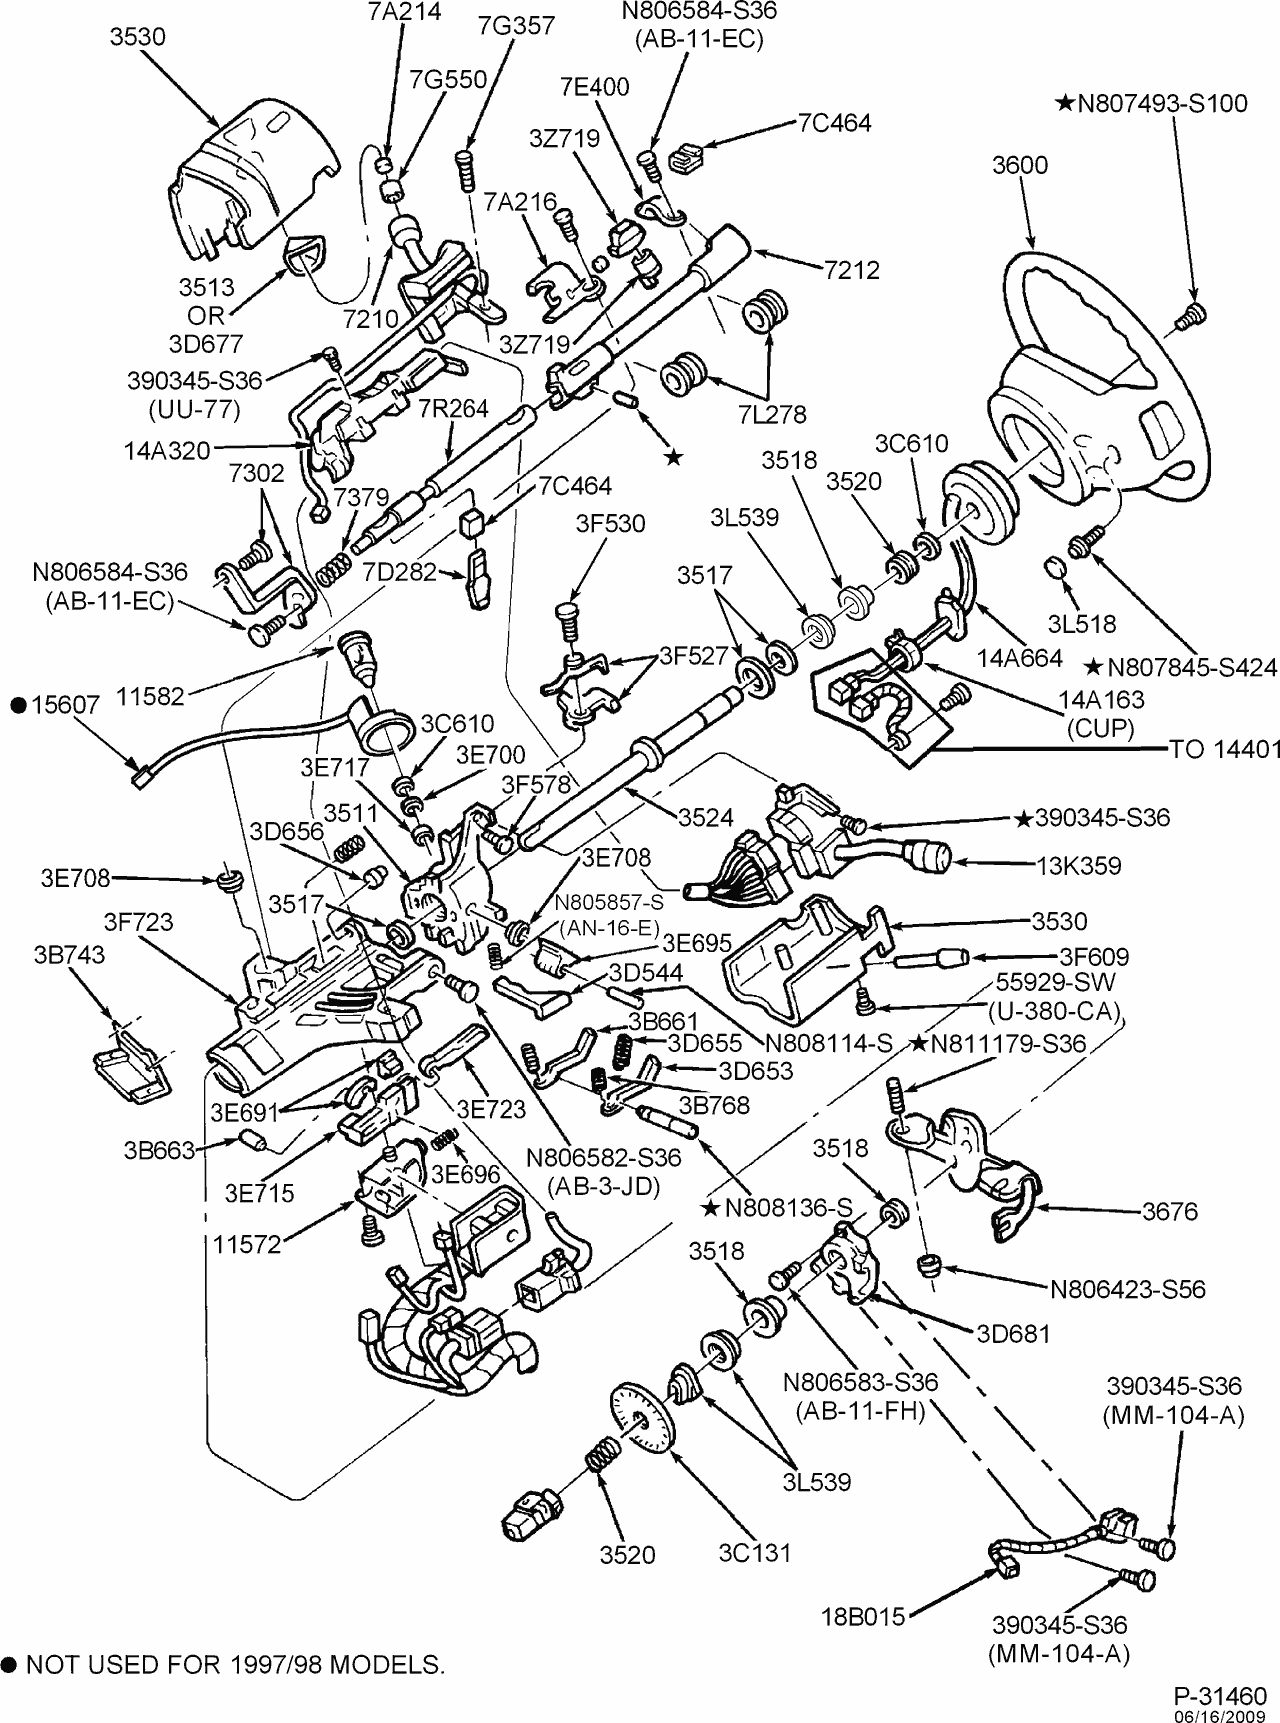 2006 F250 Wiring Diagram from www.steeringcolumnservices.com